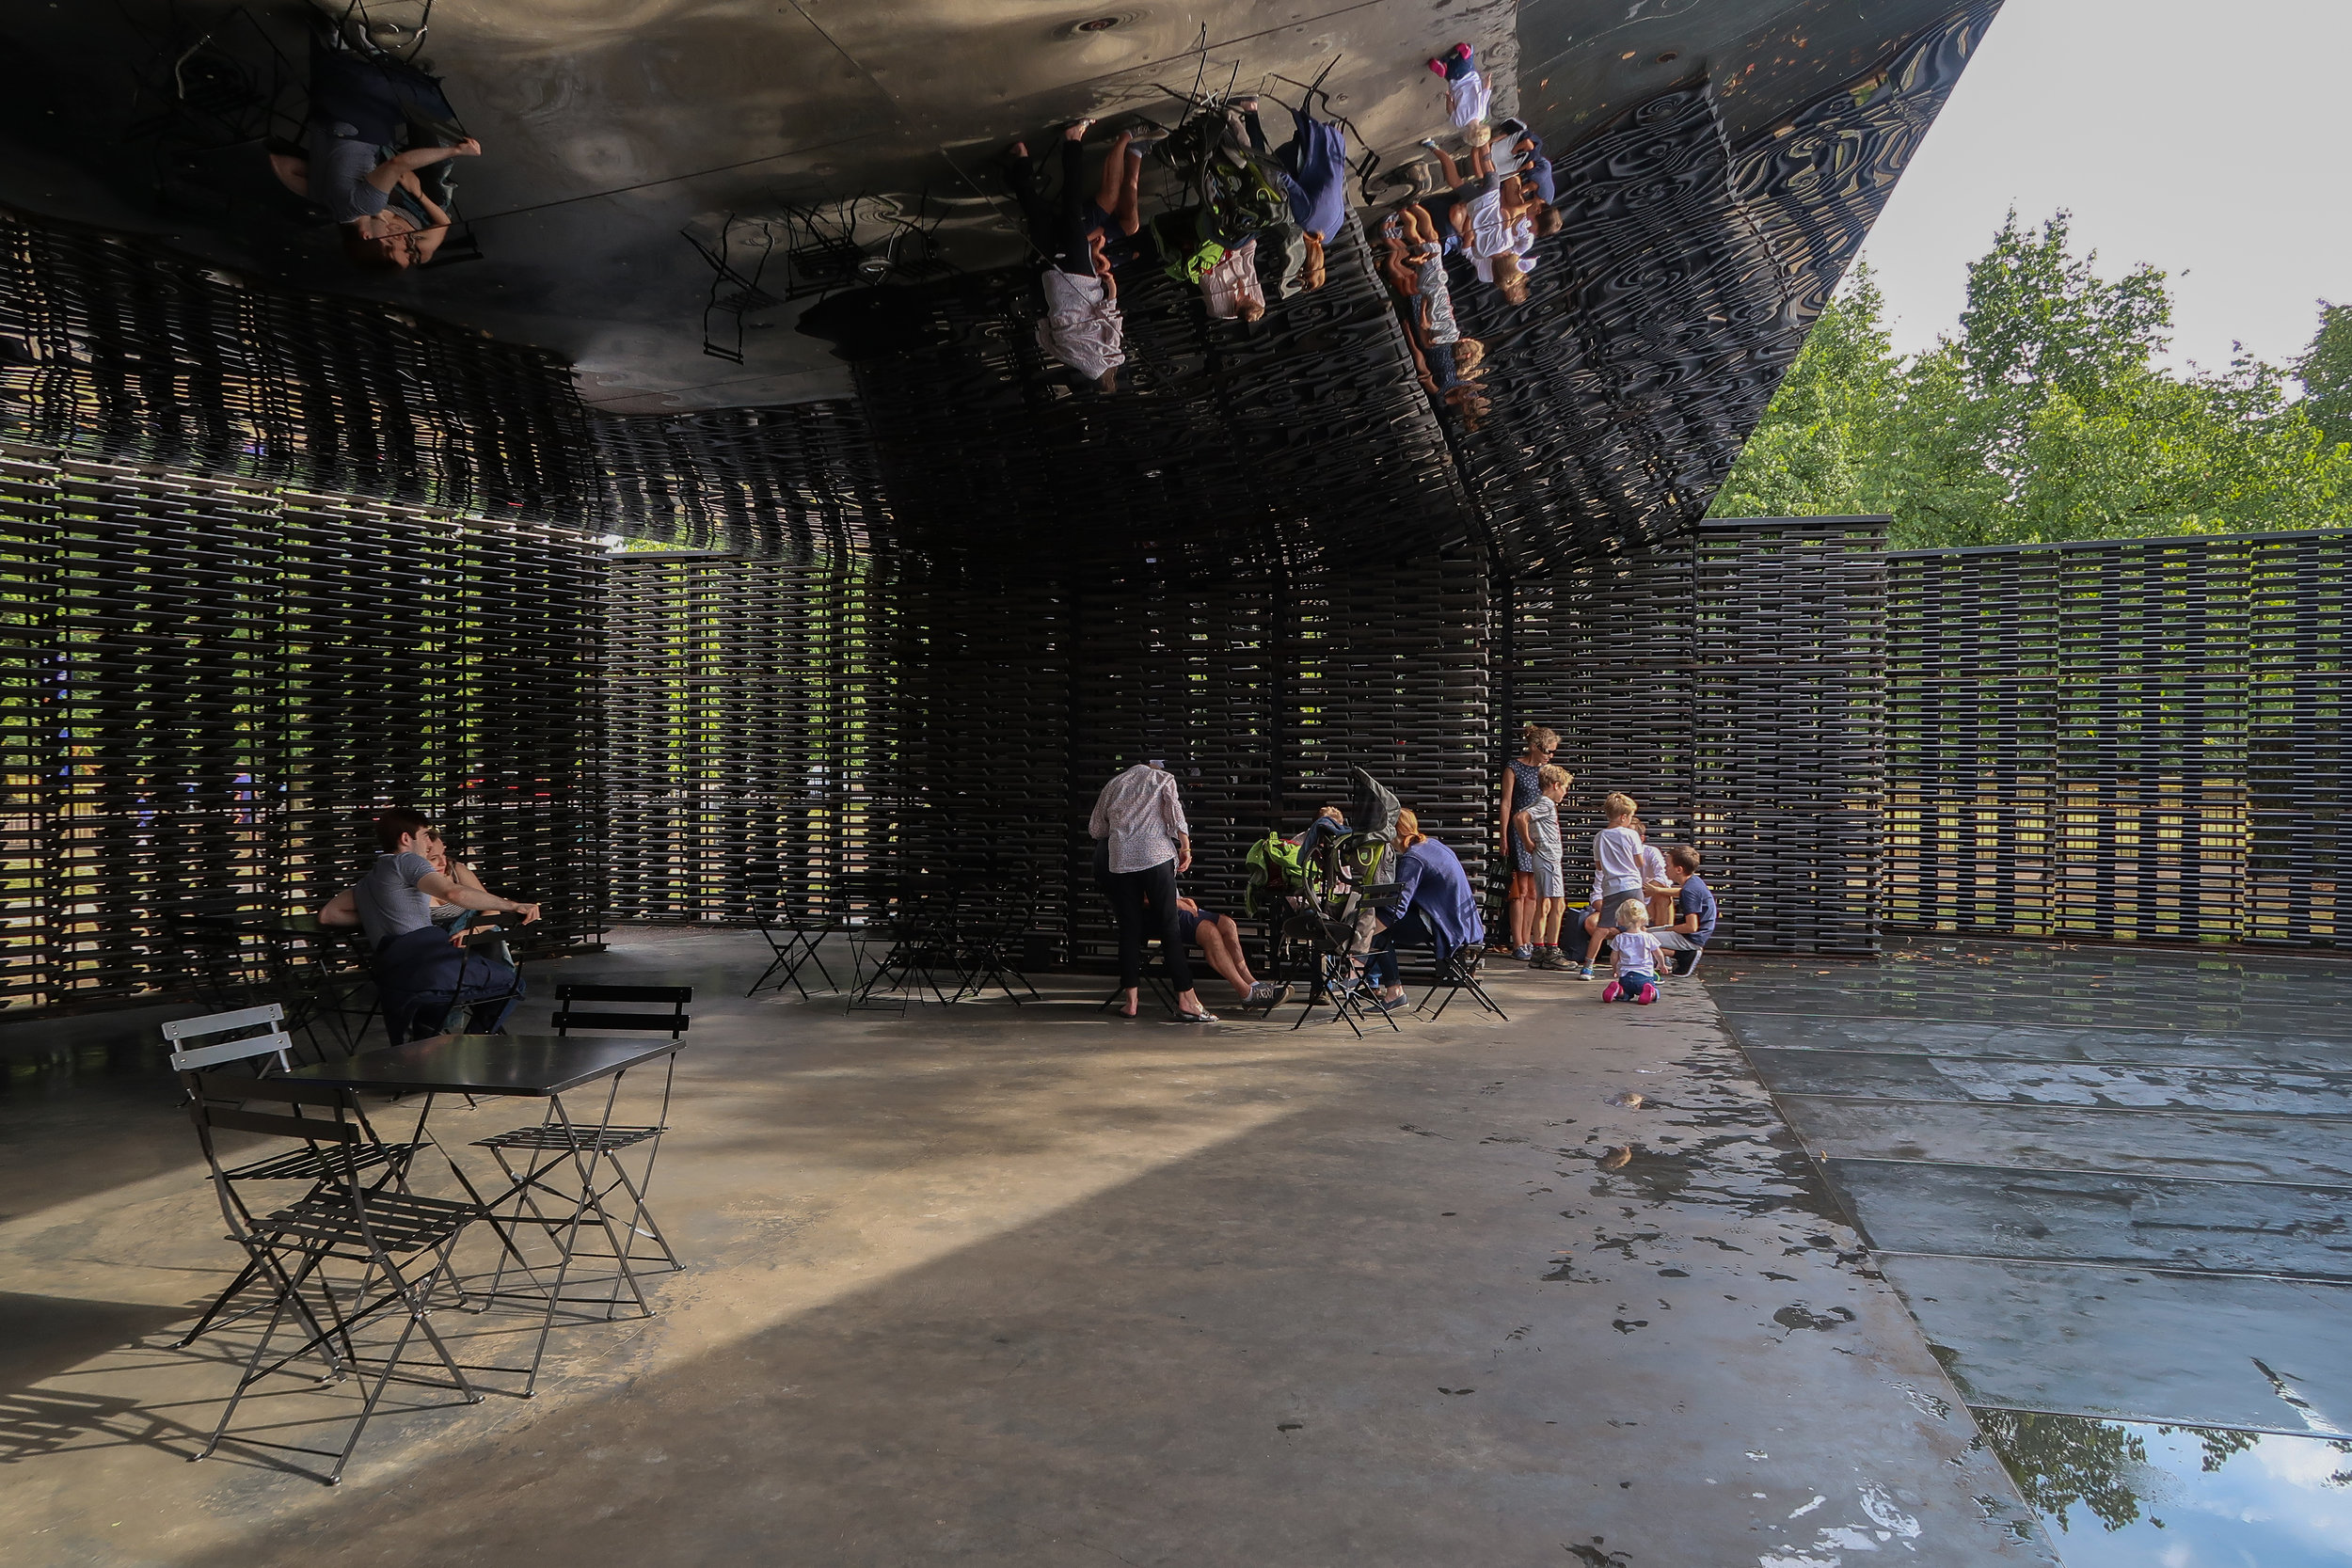 Serpentine Pavilion 2018 - own photo